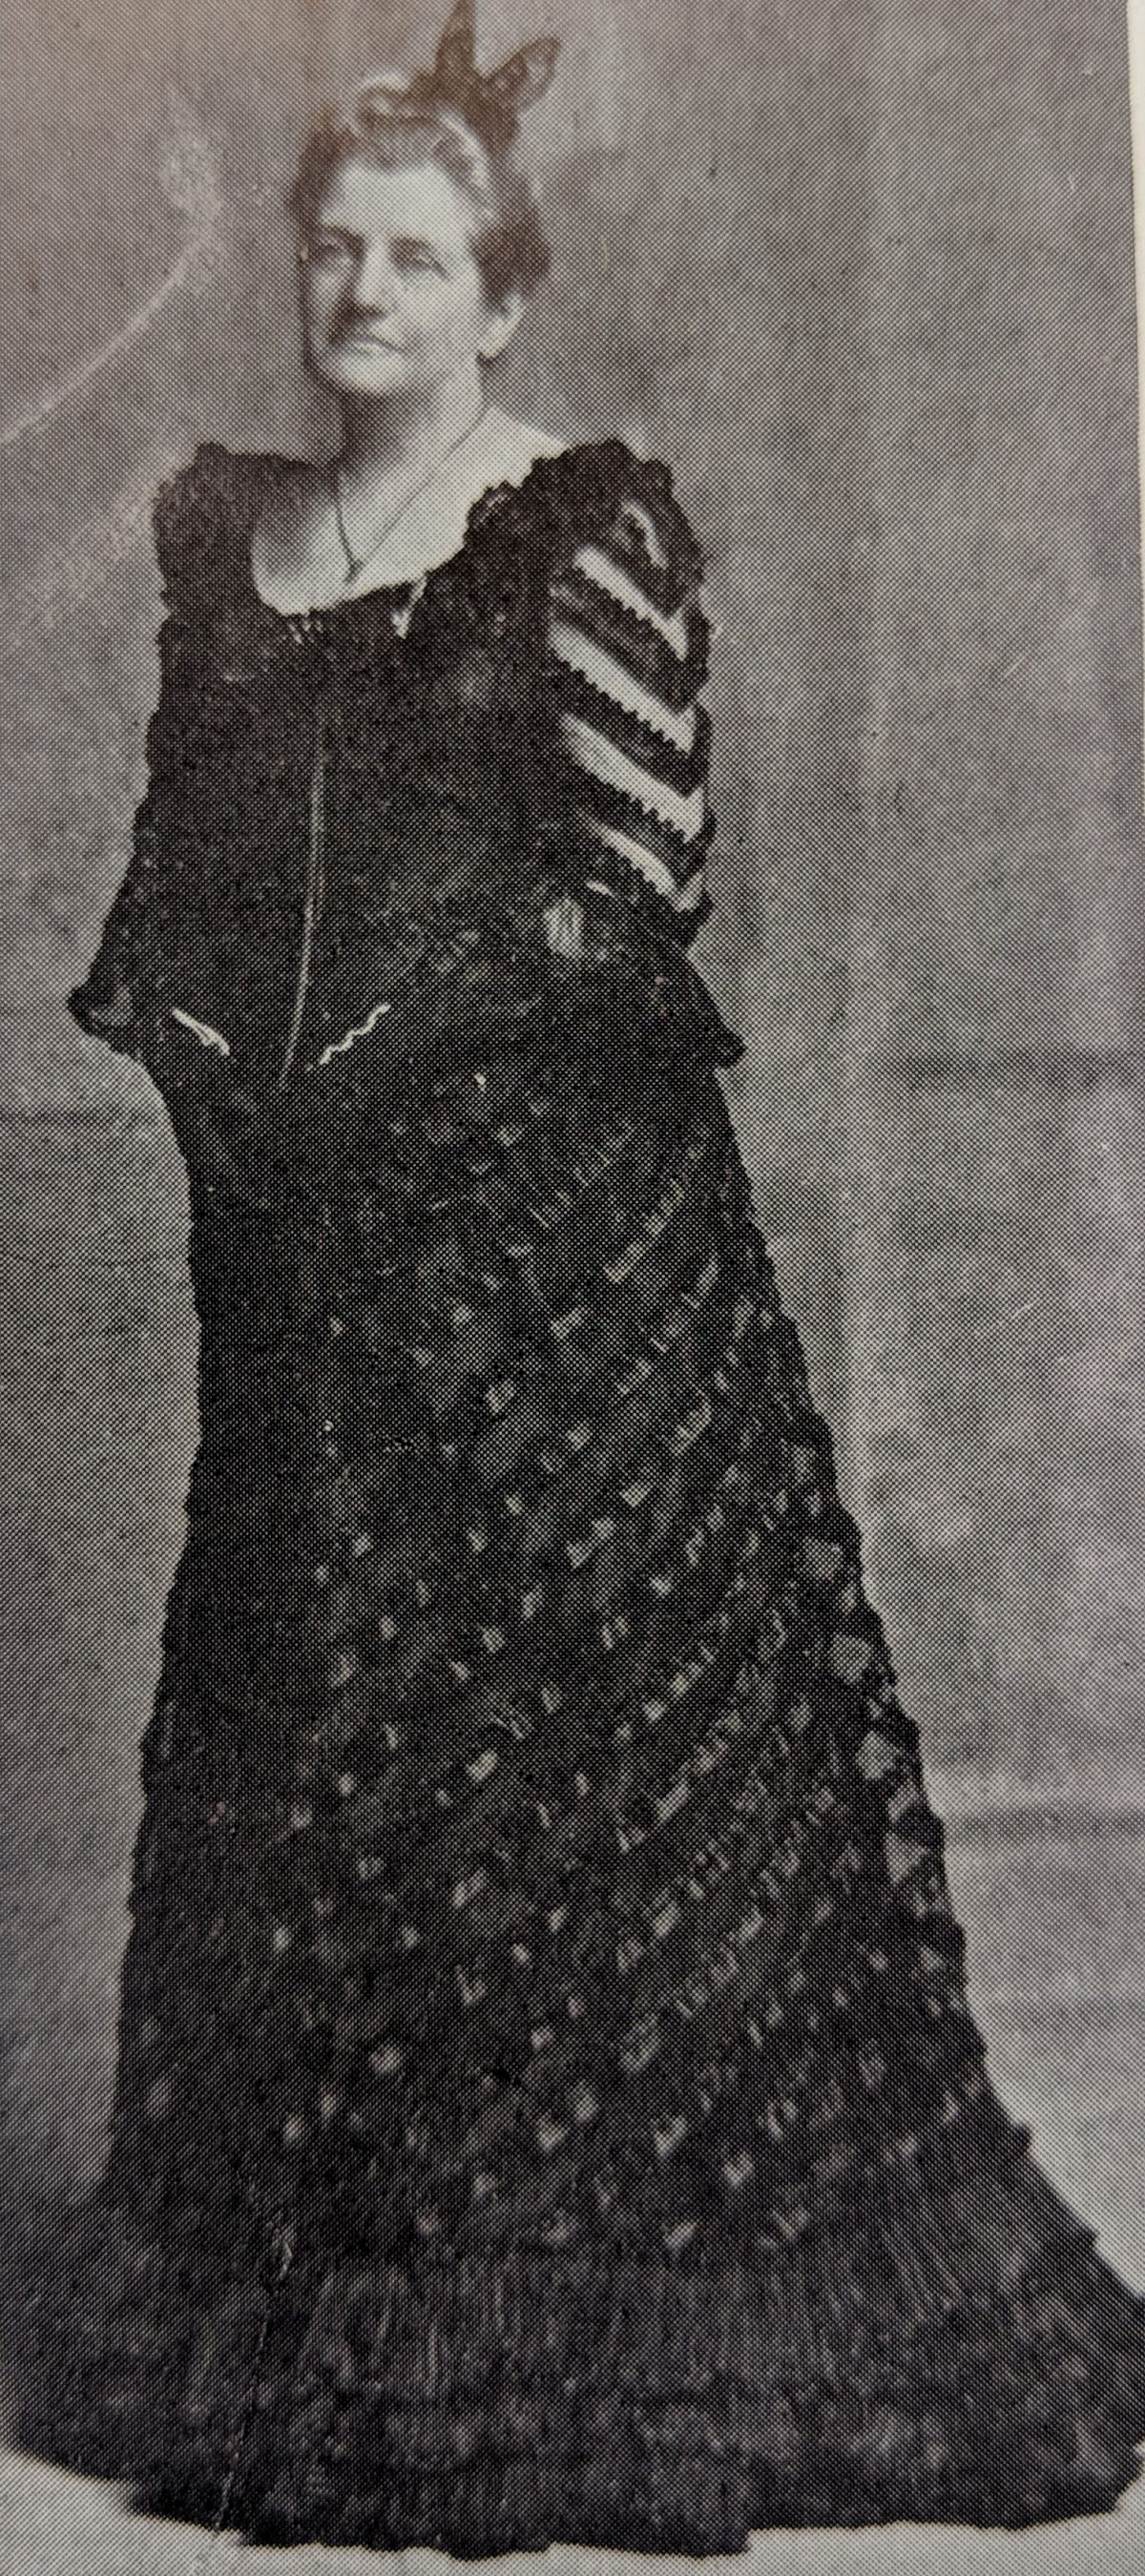 An image of Janet Randolph taken from a souvenir book commemorating the Jefferson Davis Memorial. She is wearing a long black gown.